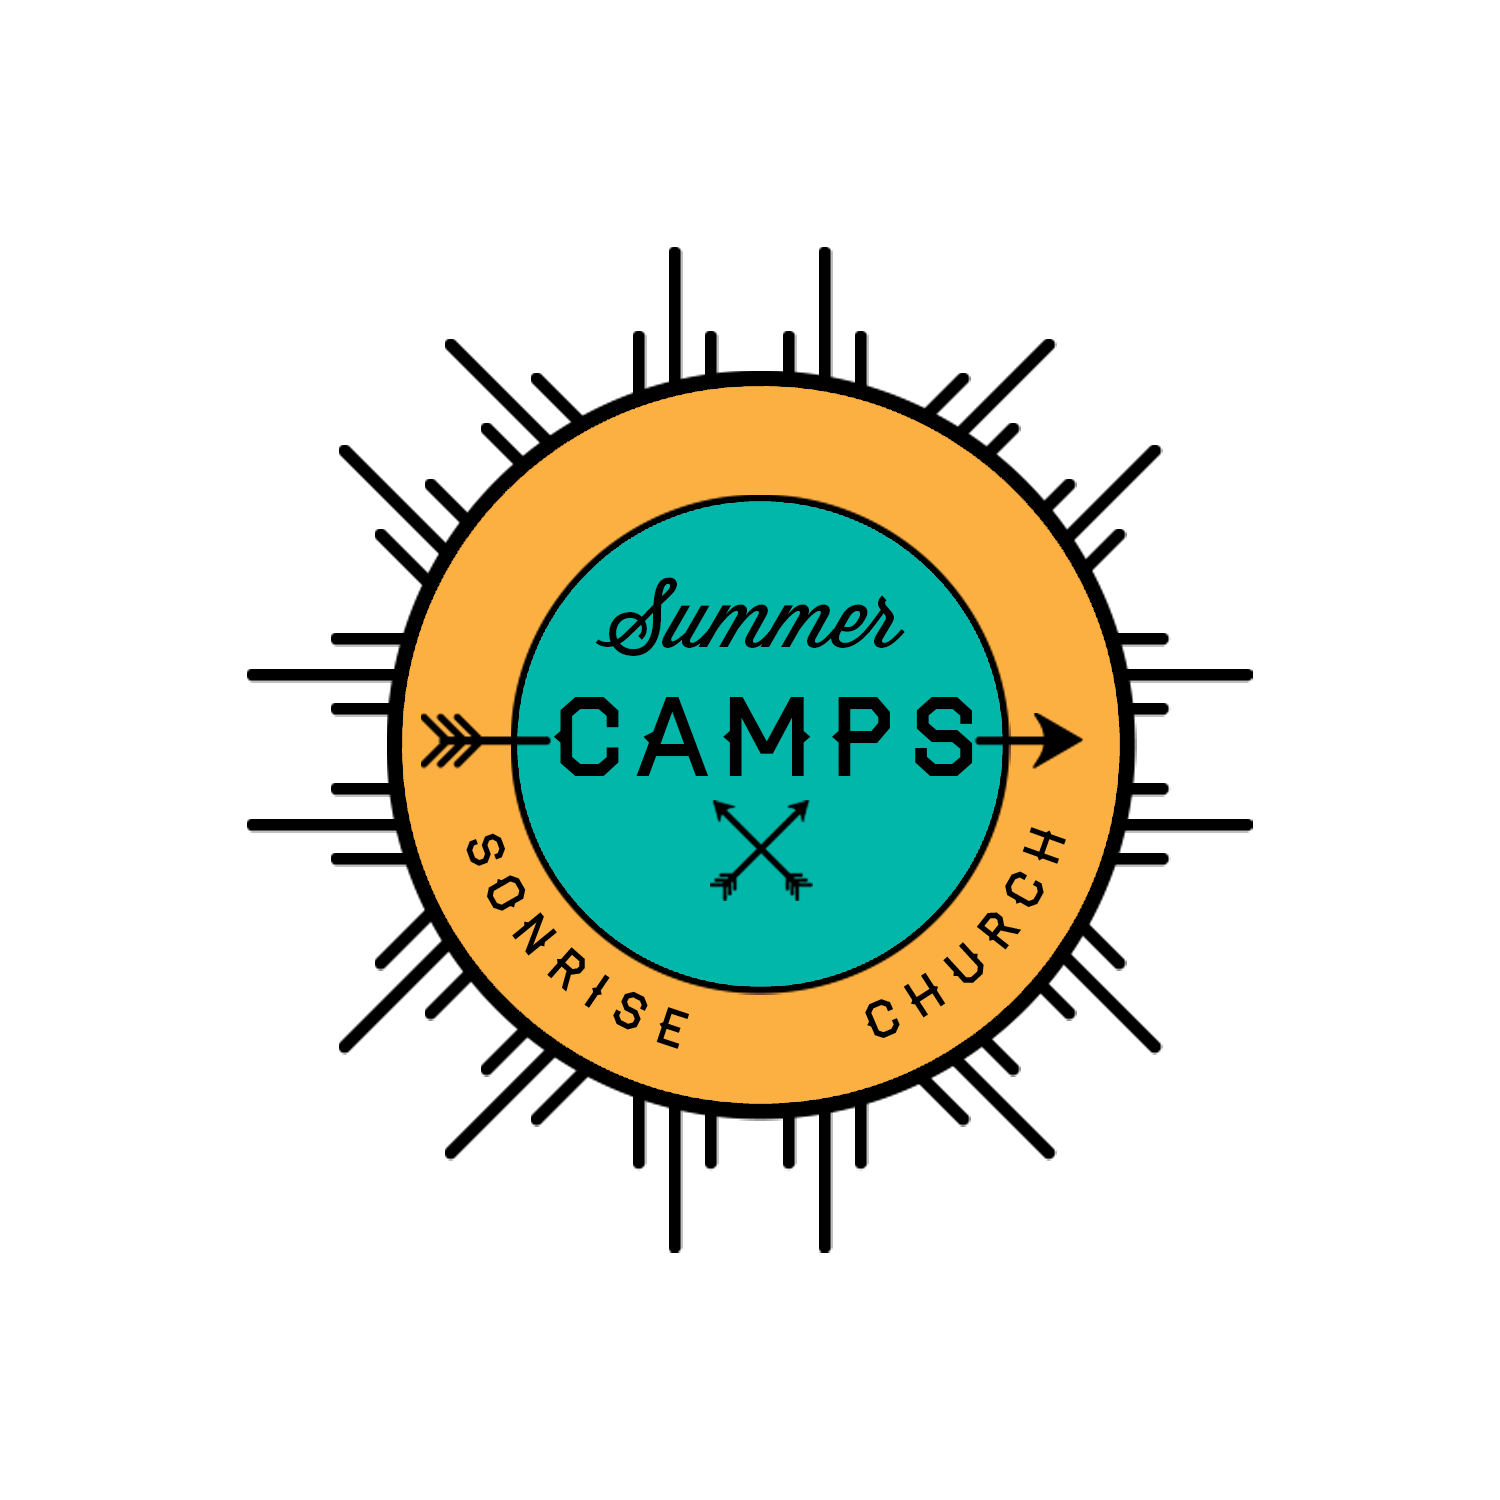 Camp logo blue orange